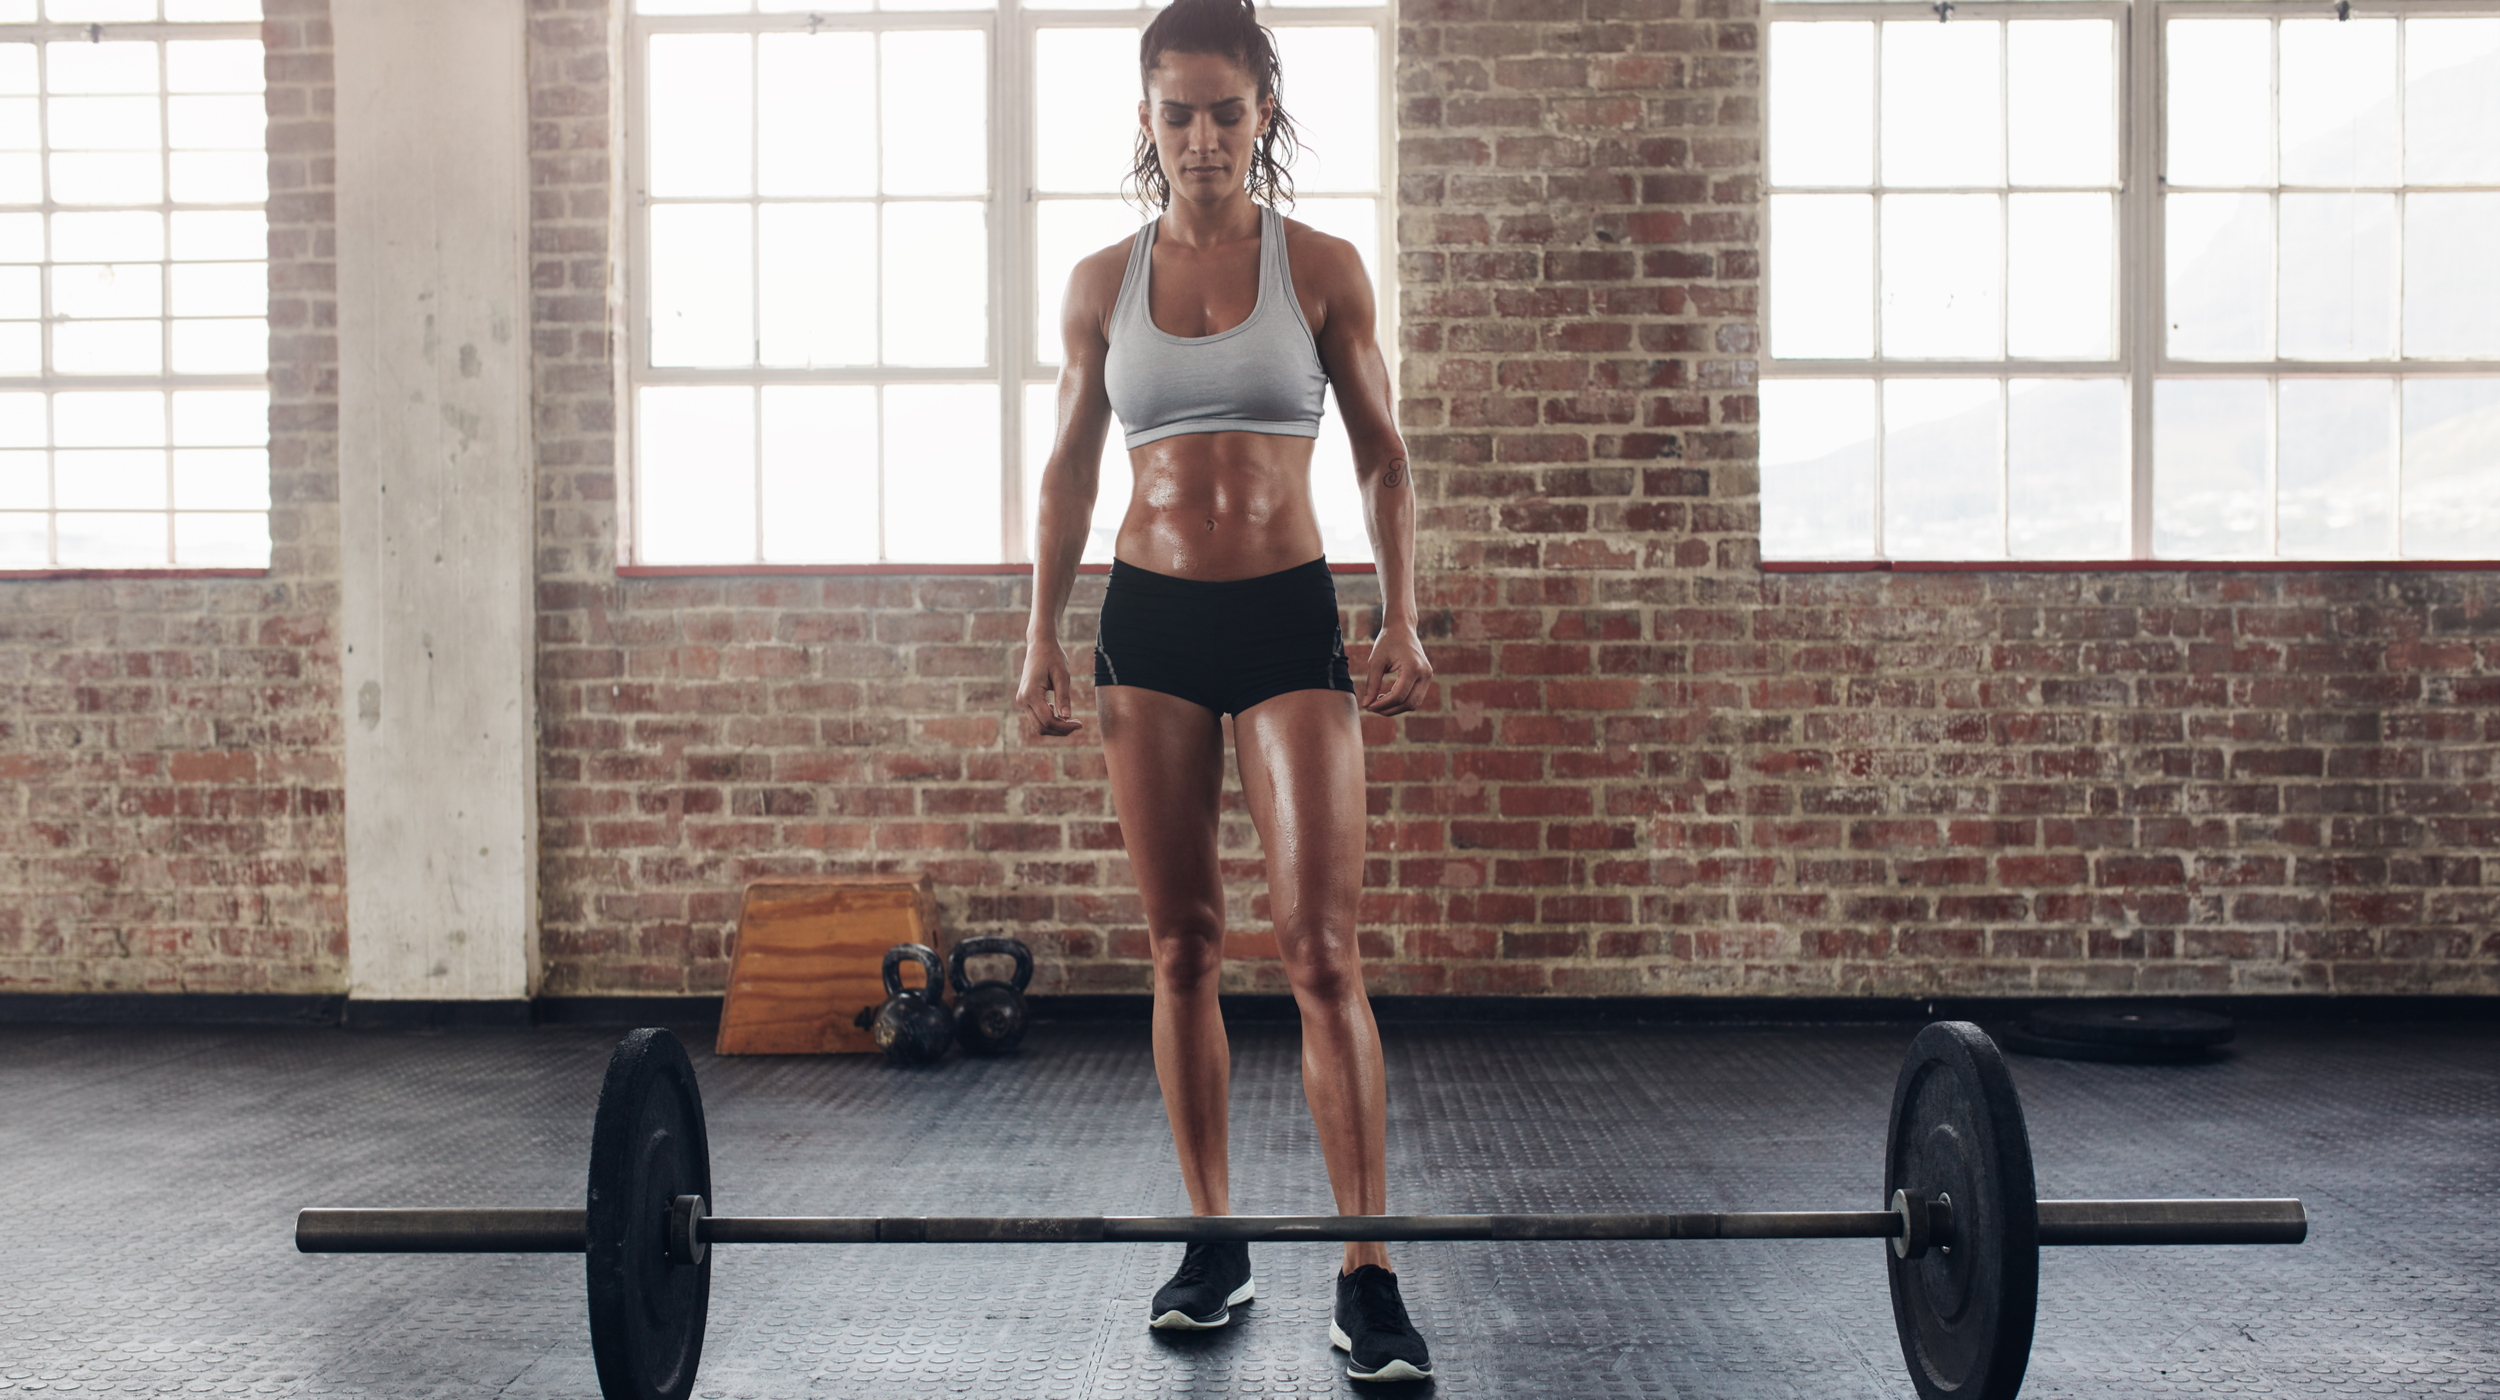 Will Lifting Weights Make Women Look Bulky?